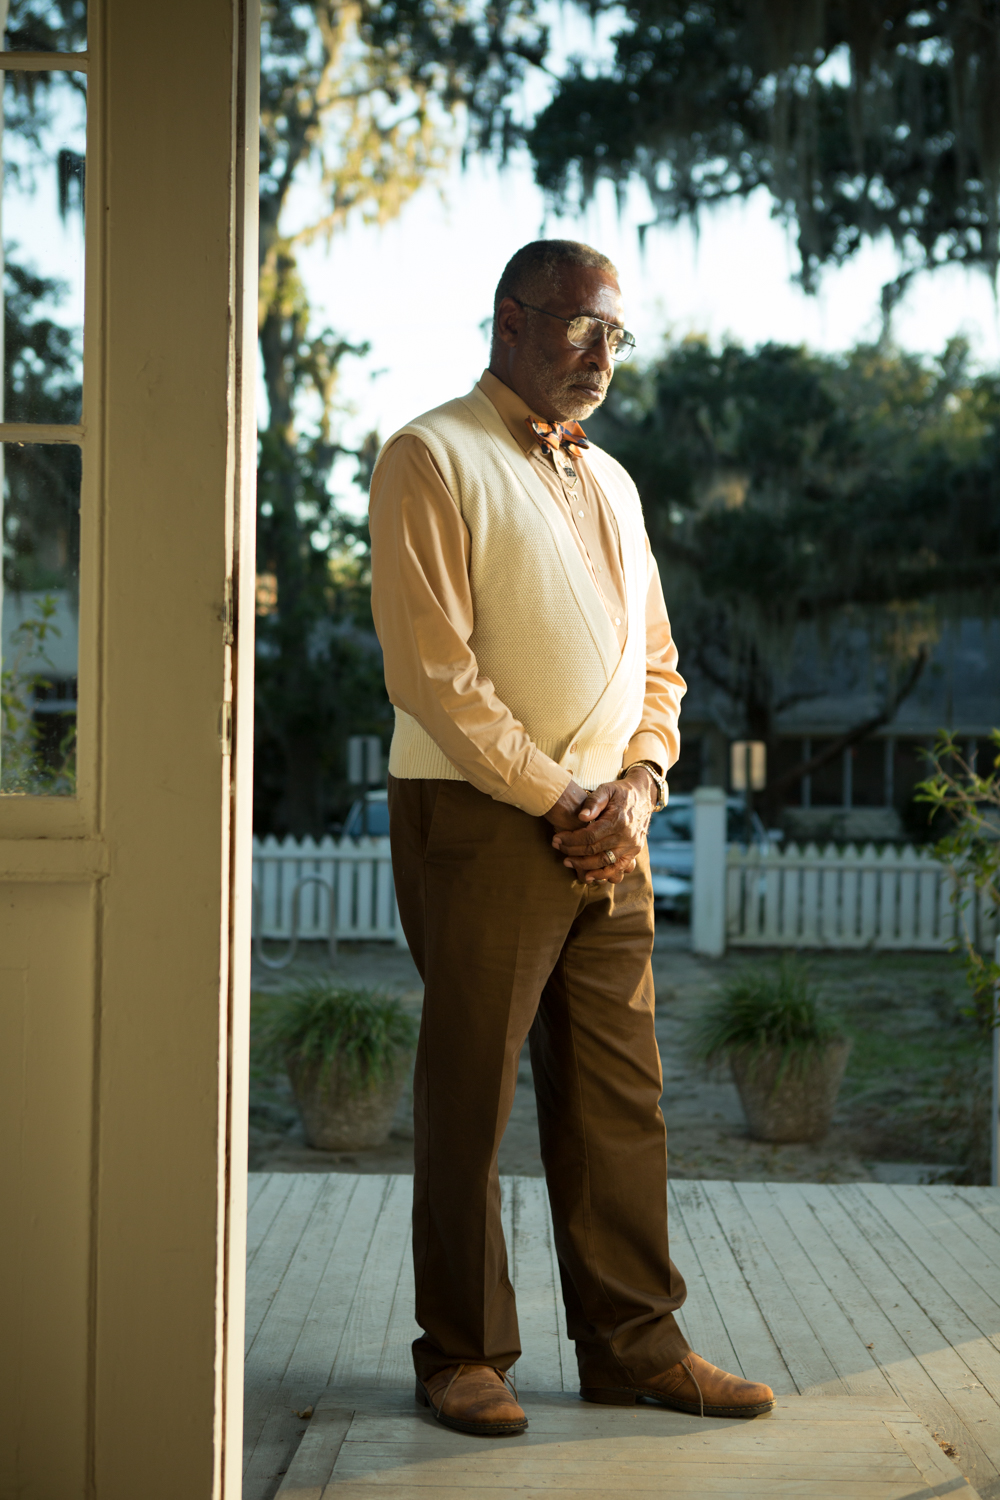 Dr. William Collins stands on the porch of a community house in Darien, heart of Georgia's Gullah Geechee culture, after a meeting. In the late 1990s, Dr. Collins, a preservationist and personal historian, discovered and purchased a plot of land that had belonged to his great-grandfather, Cain Hammond, a former slave in McIntosh County, who bought it back in 1875. Dr. Collins now lives on the land and calls it Hammond's Cove.